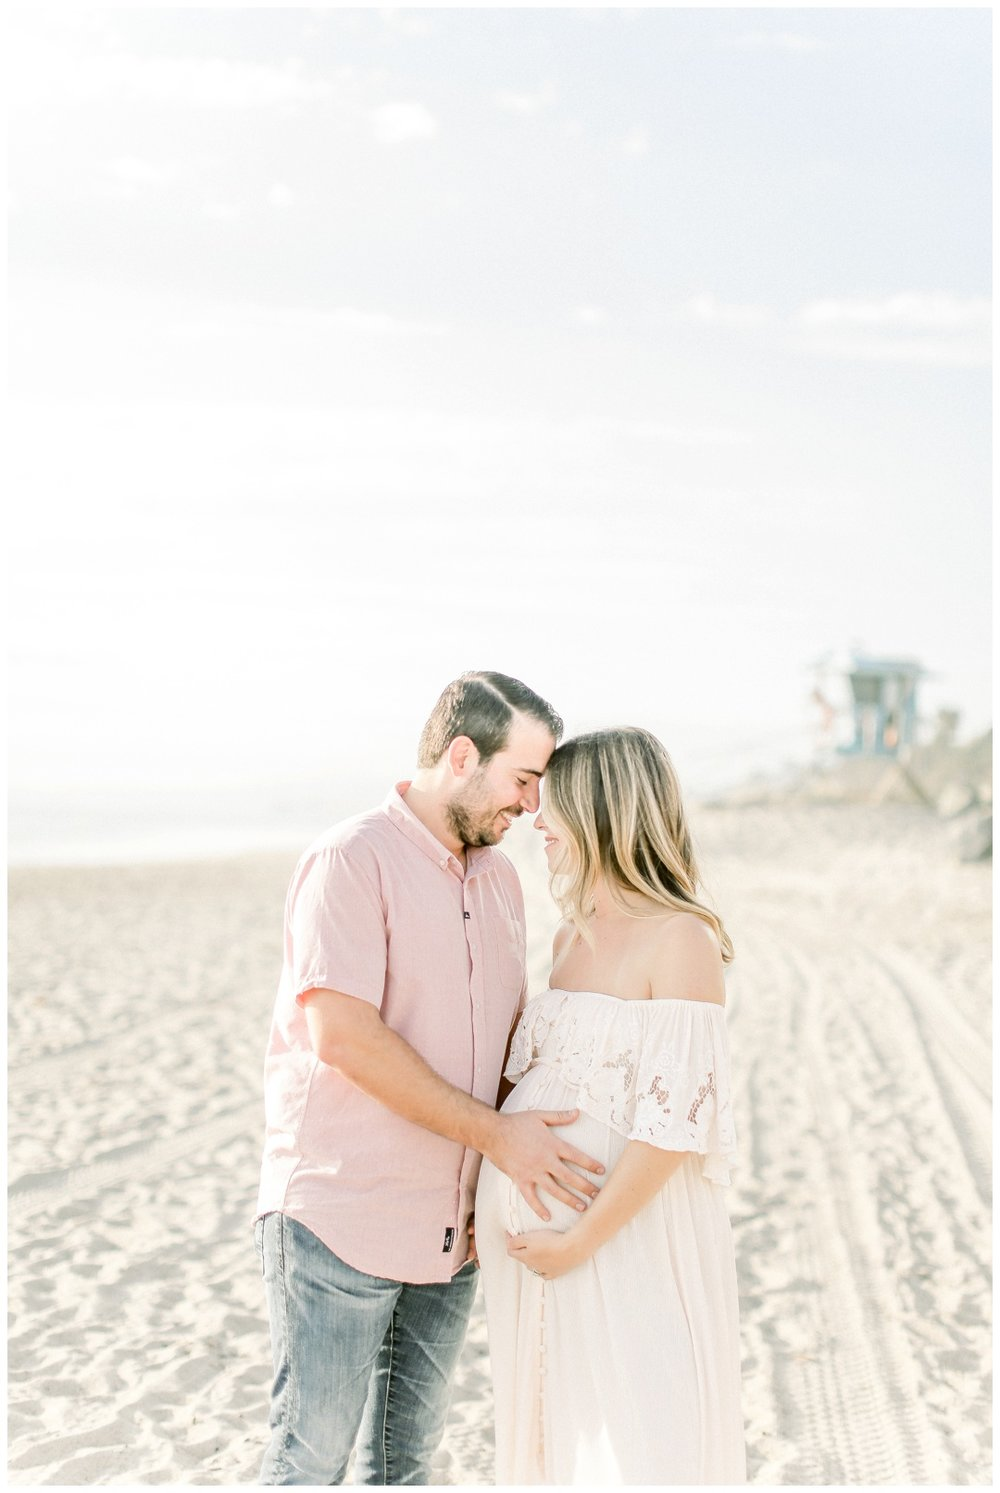 Newport_Beach_Maternity_Photographer_Newport_Beach_Newborn_Photographer_Orange_County_Newborn_Photographer_Cori_Kleckner_Photography_Orange_County_San_Clemente_Maternity_Session_Photography__2263.jpg